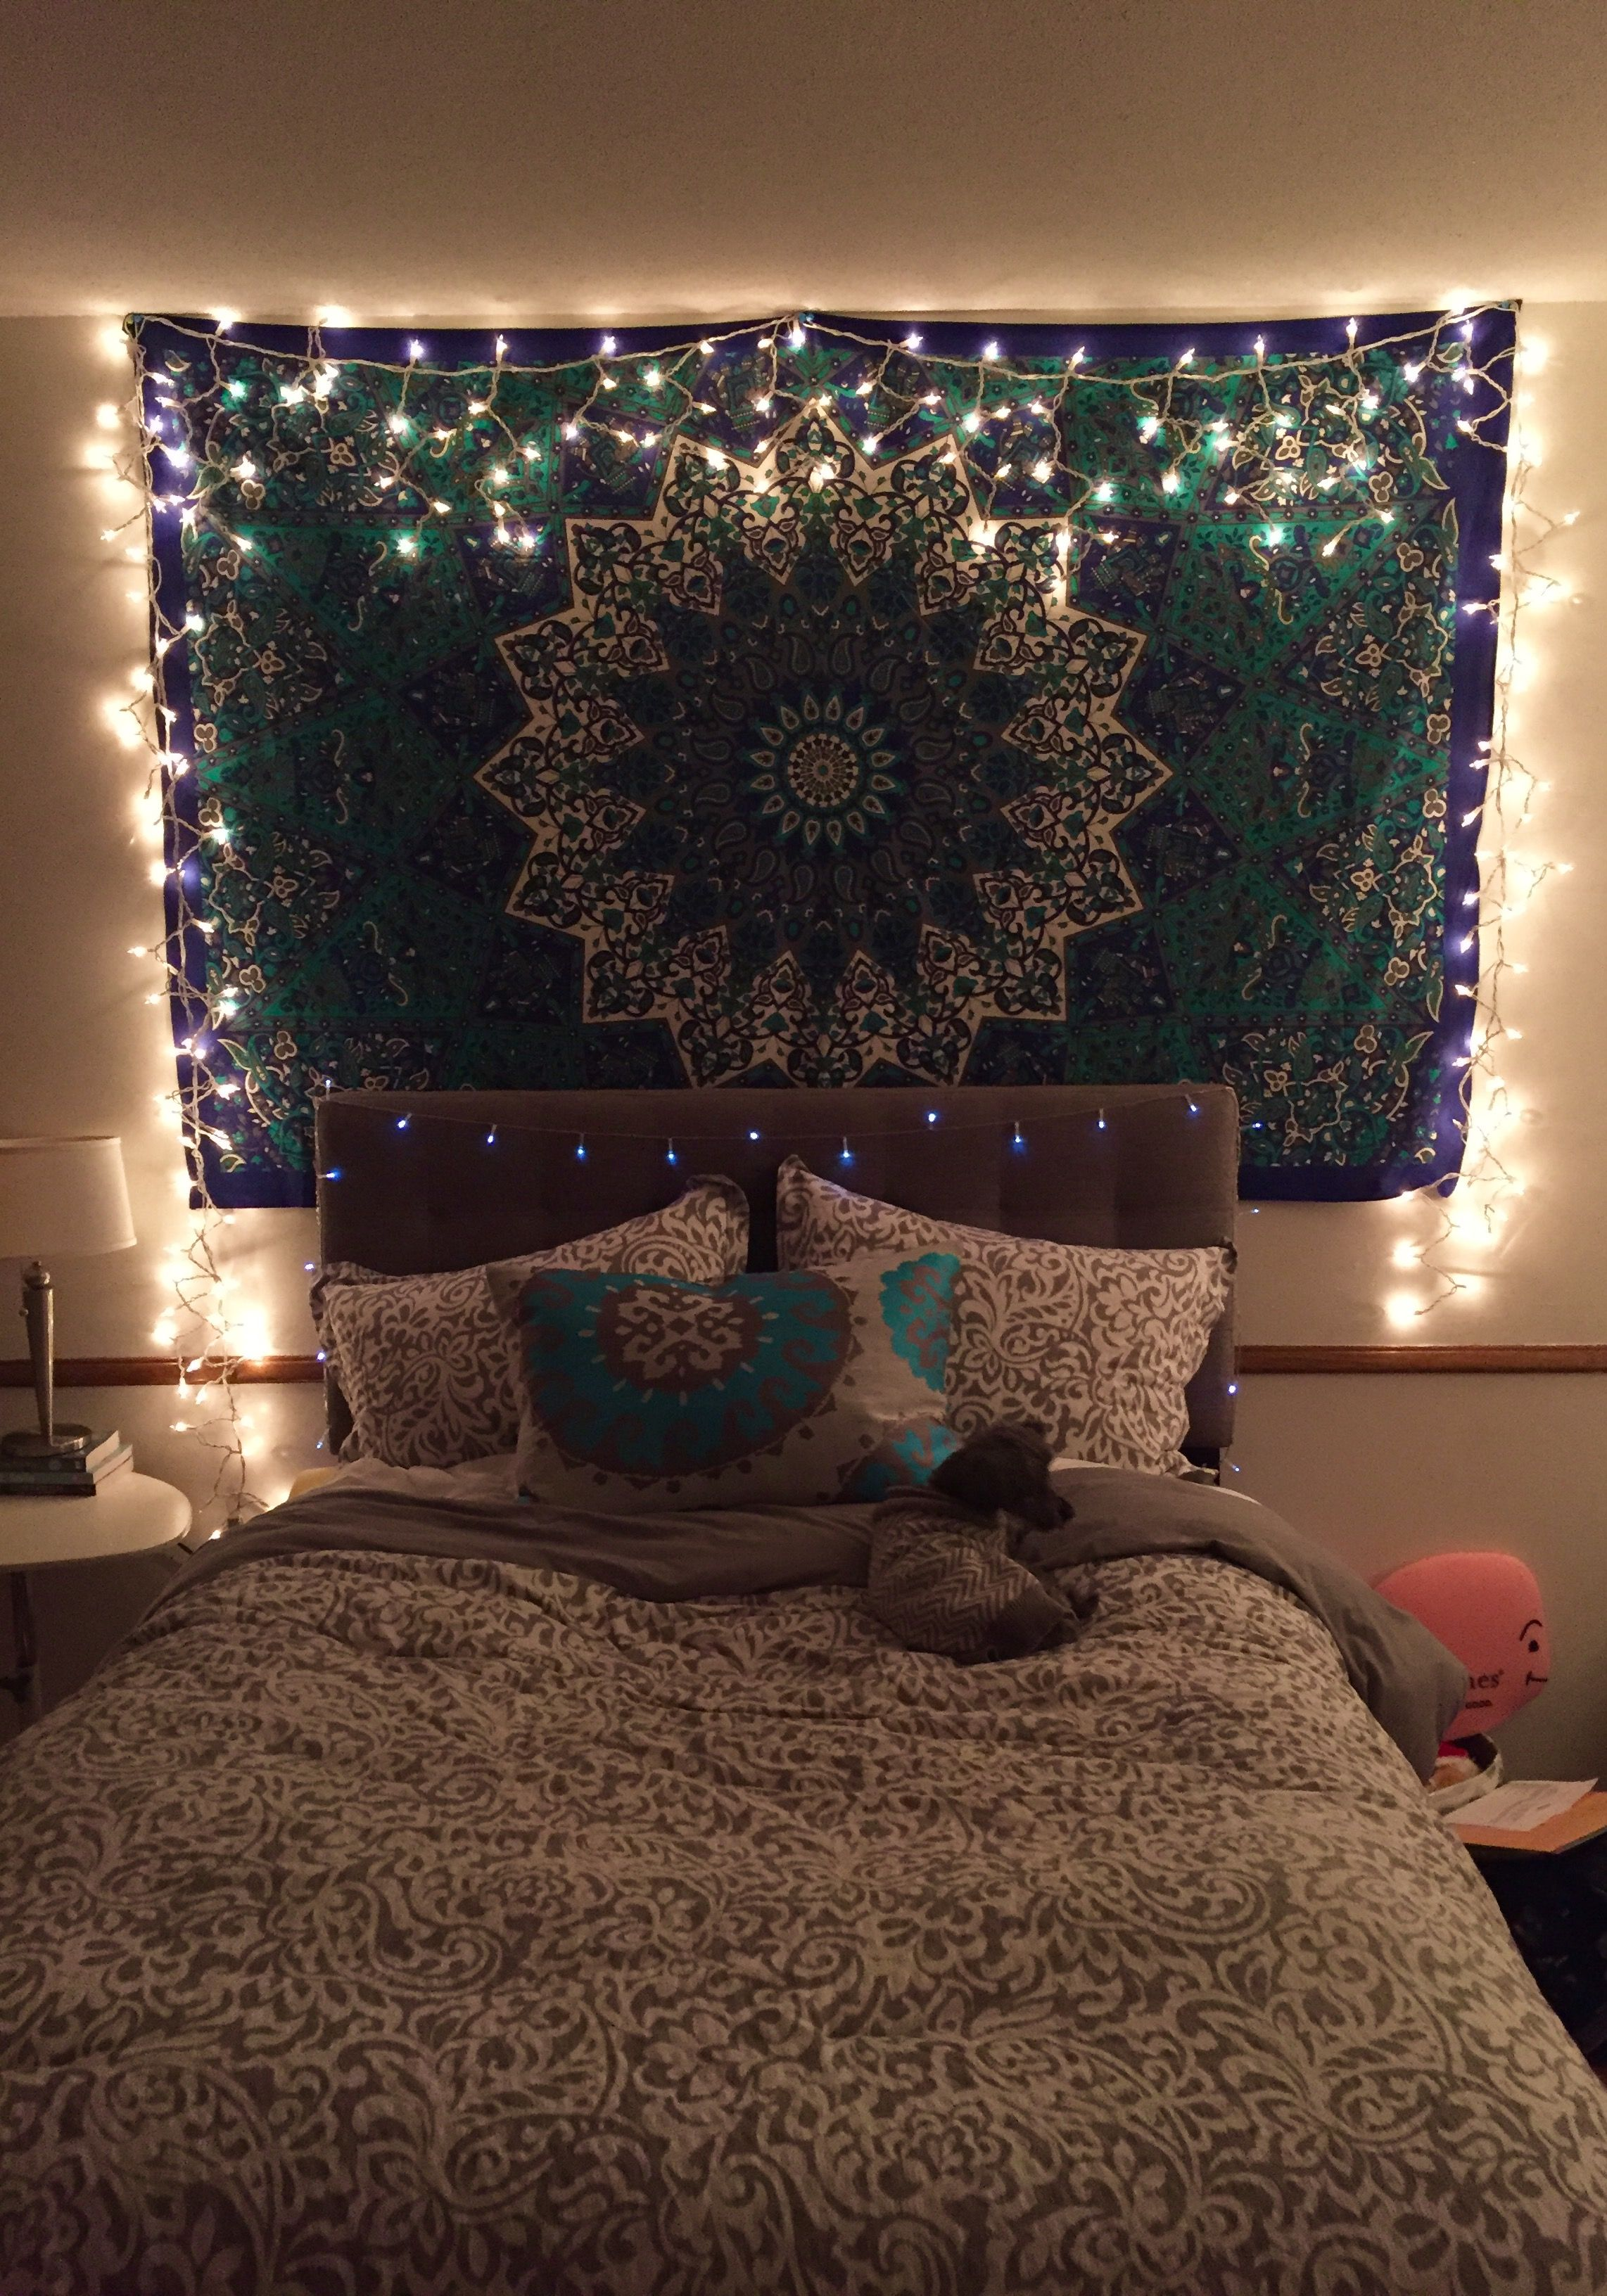 turquoise bohemian bedroom ideas tapestry with icicle lights | Bedroom | Bedroom decor